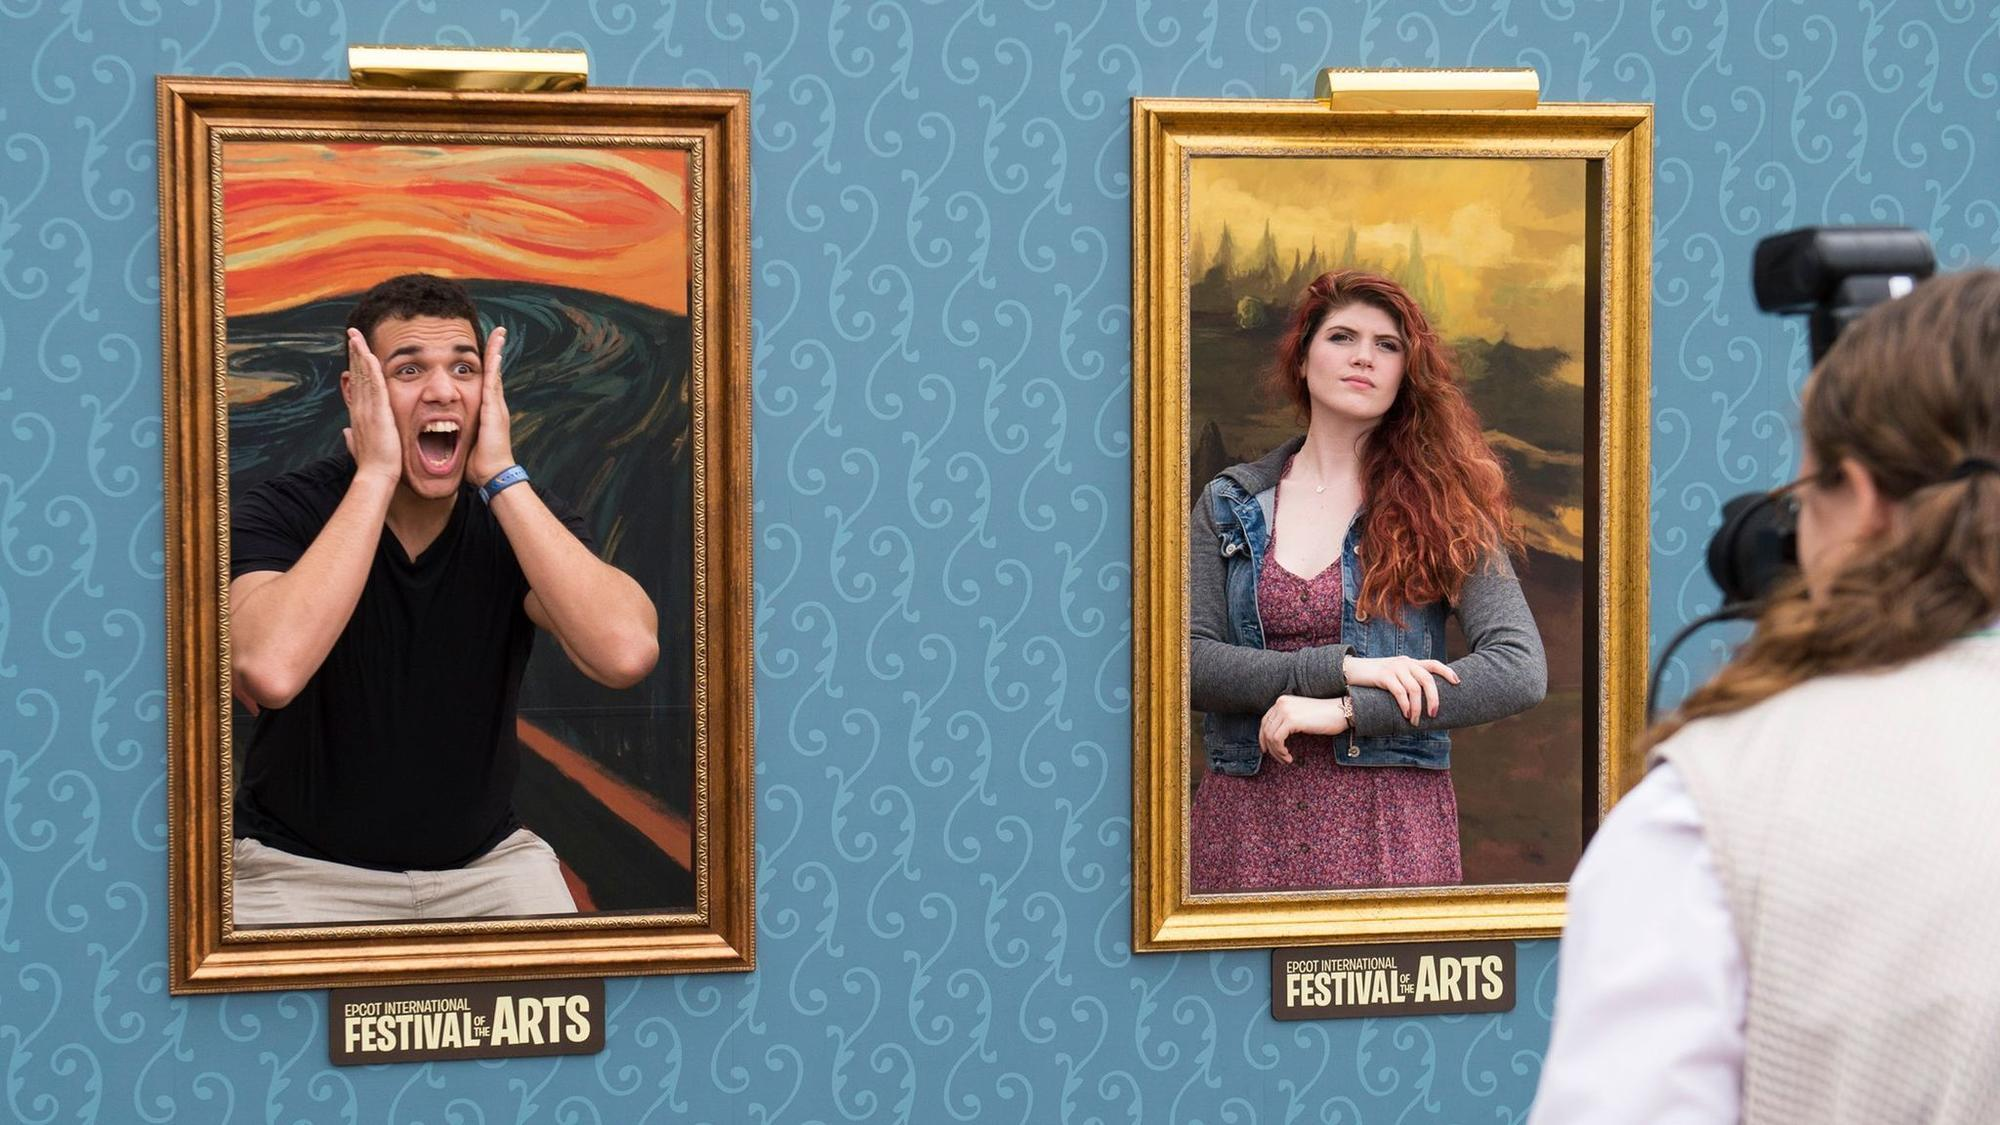 Festival of the Arts